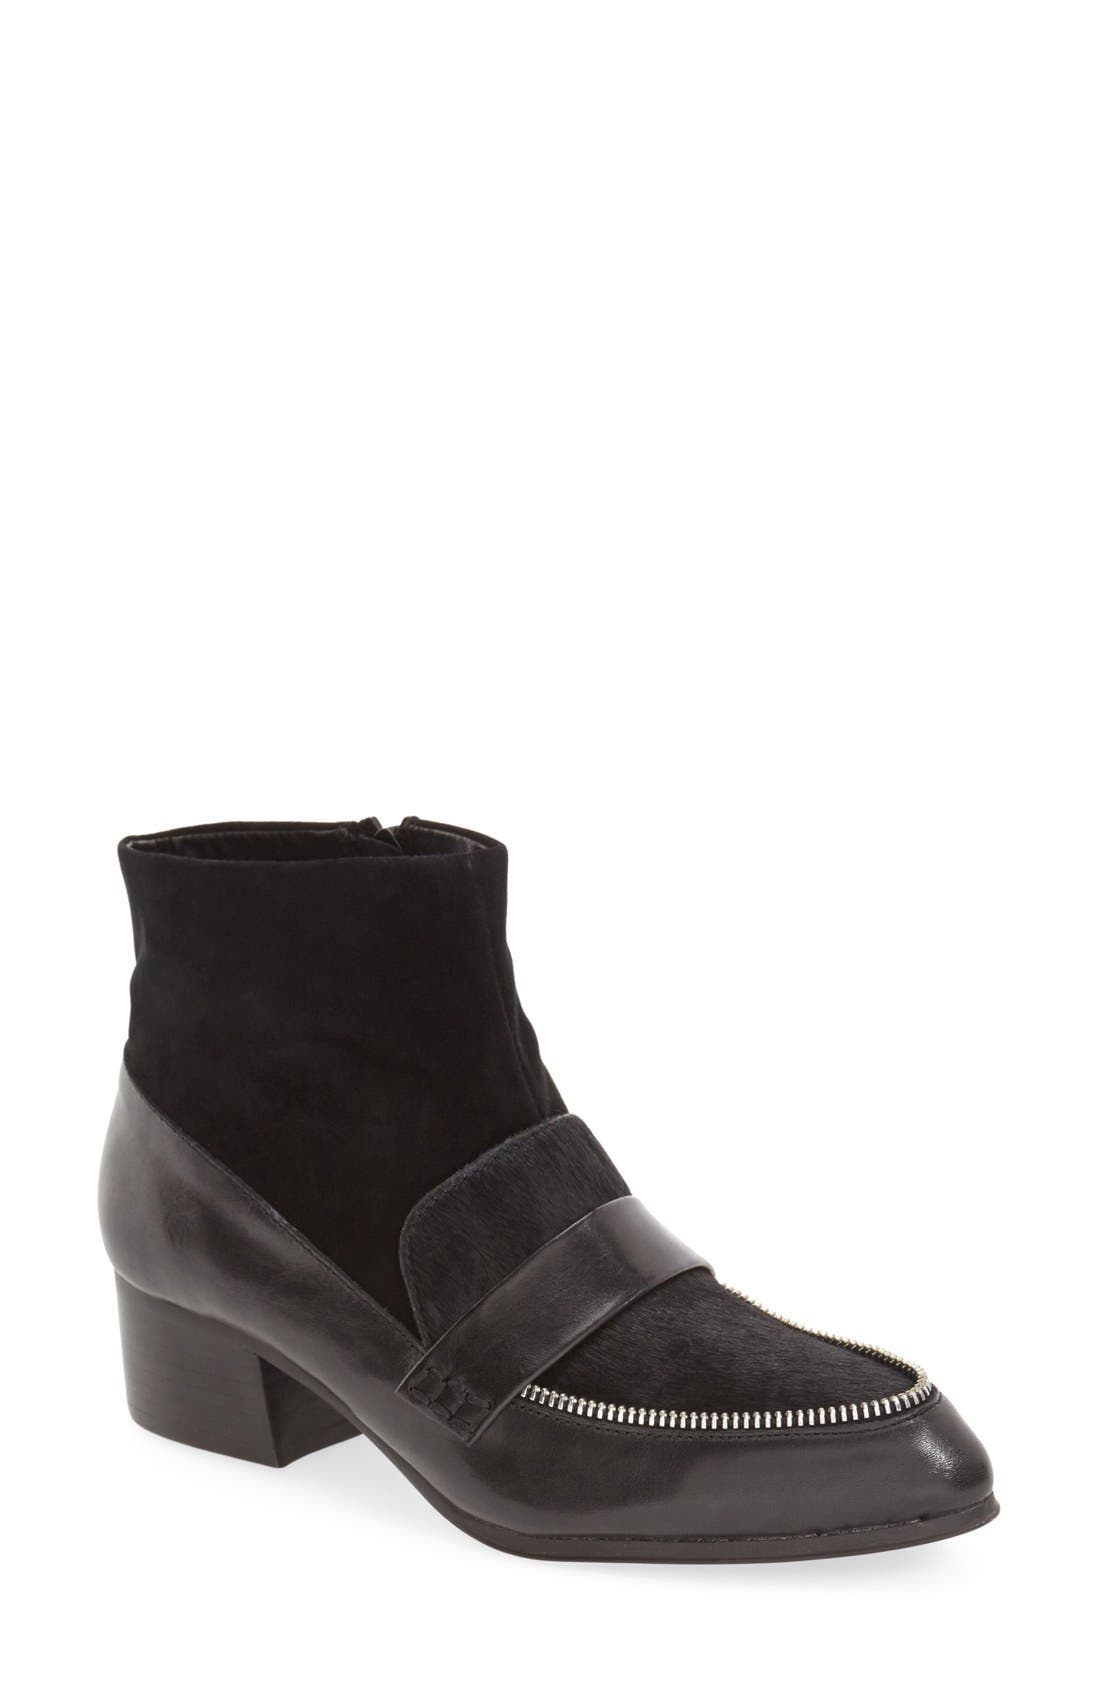 'Colchester' Genuine Calf Hair Bootie,                         Main,                         color, 001